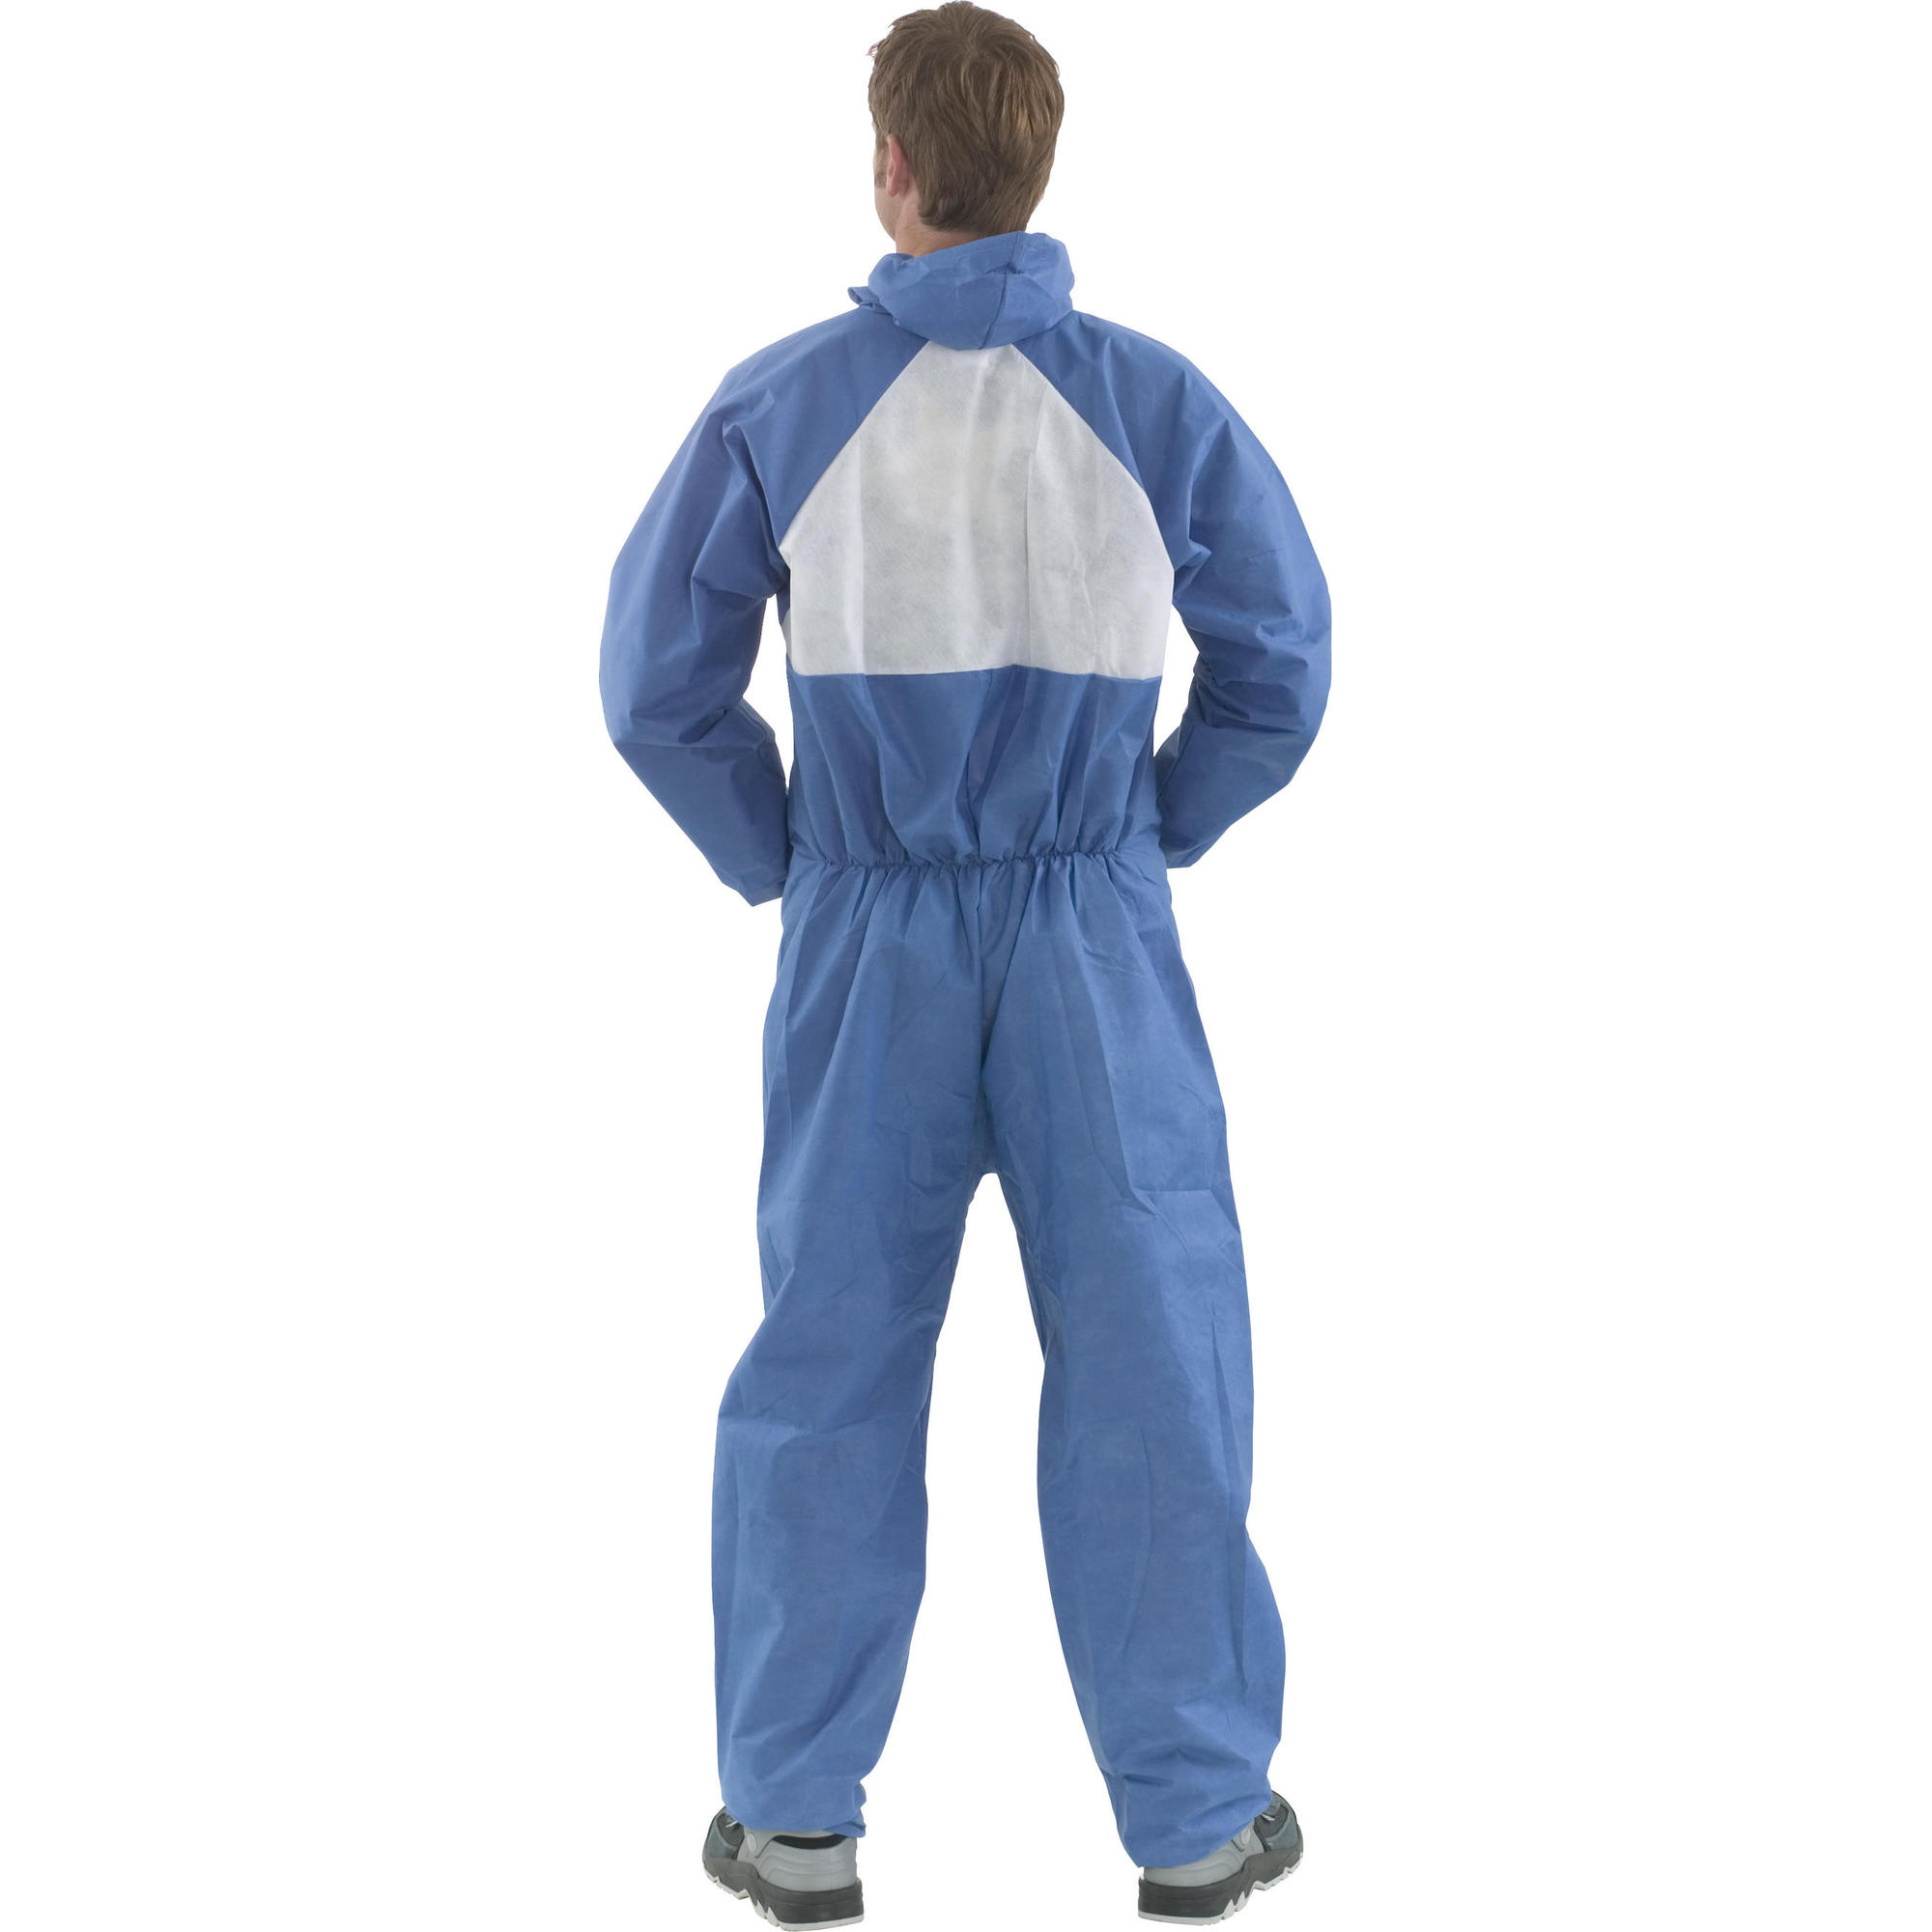 3M 4530 Fire Resistant Coveralls L Blue/White Ref 4530L [Pack 20] *Up to 3 Day Leadtime*